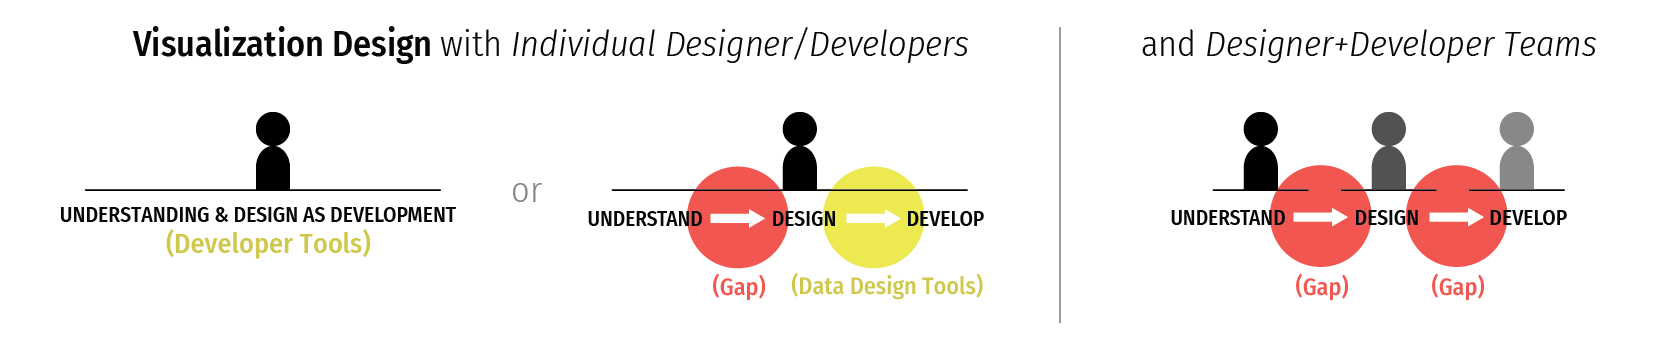 There are gaps in commercial tool support for visualization design between data understanding, design, and development.